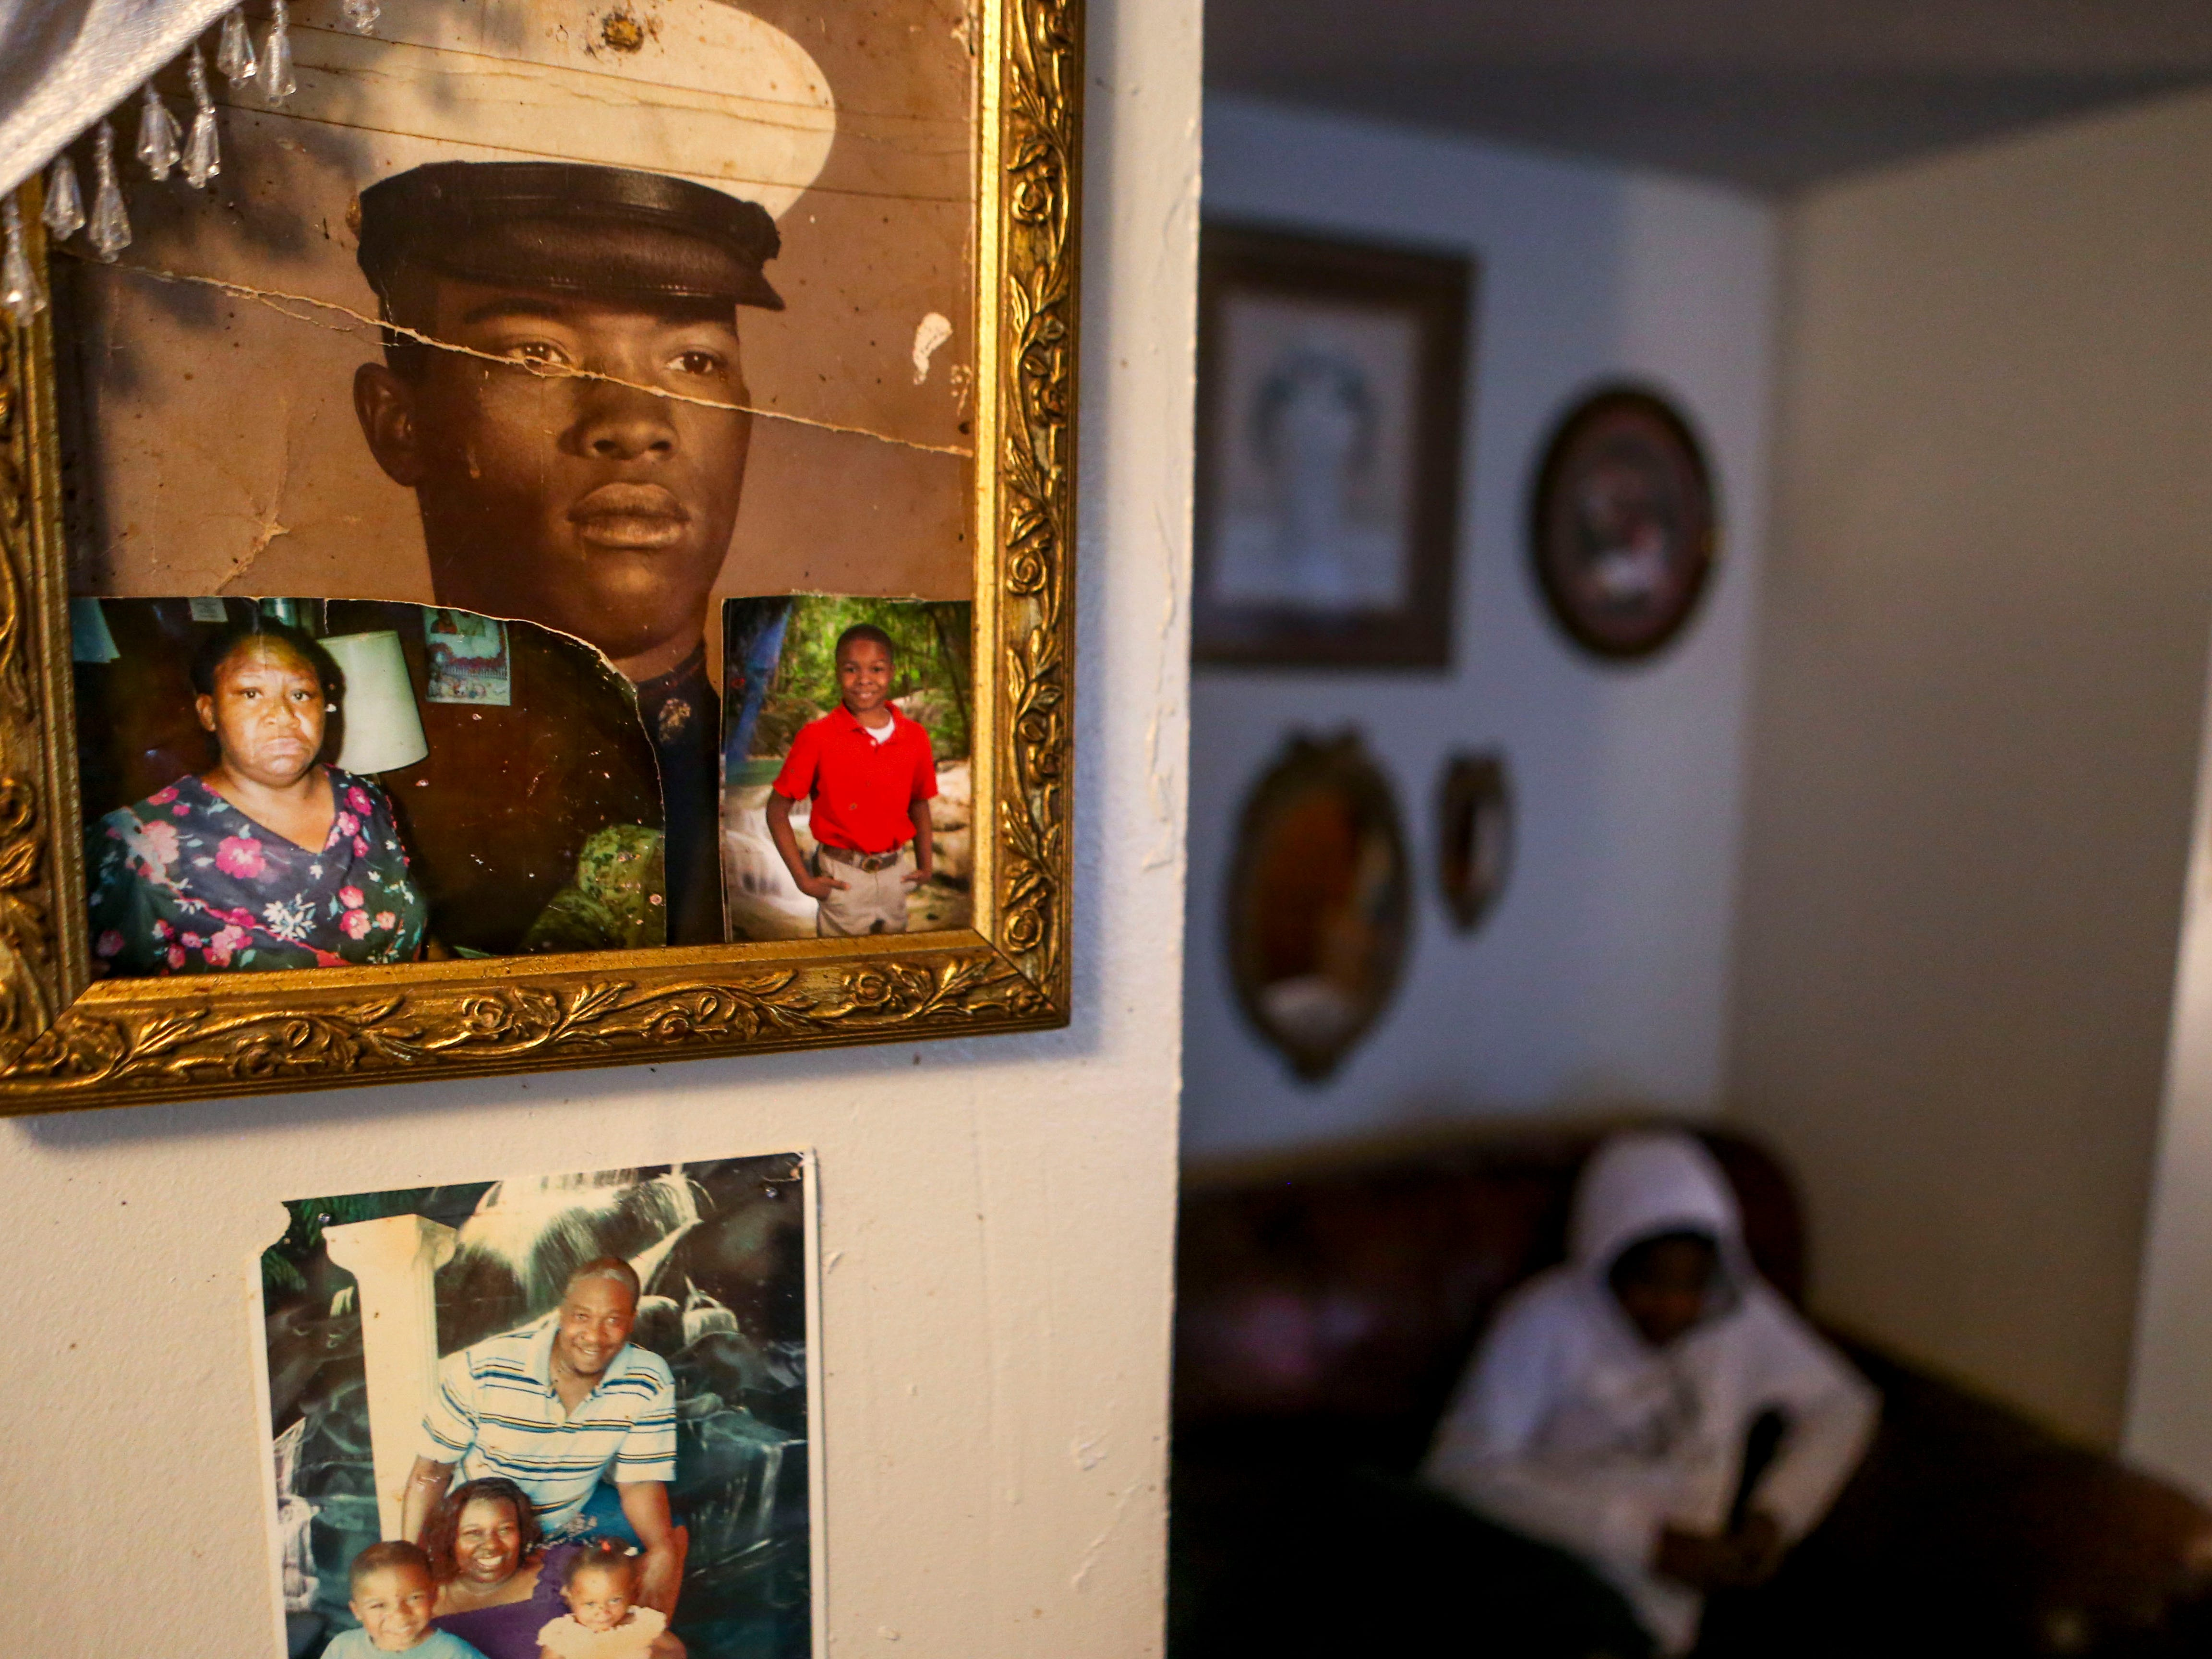 Portraits of family members are mounted above a photo of the McCurry family at their home in Guardian Courts Apartments in Jackson, Tenn., on Tuesday, Oct. 23, 2018.